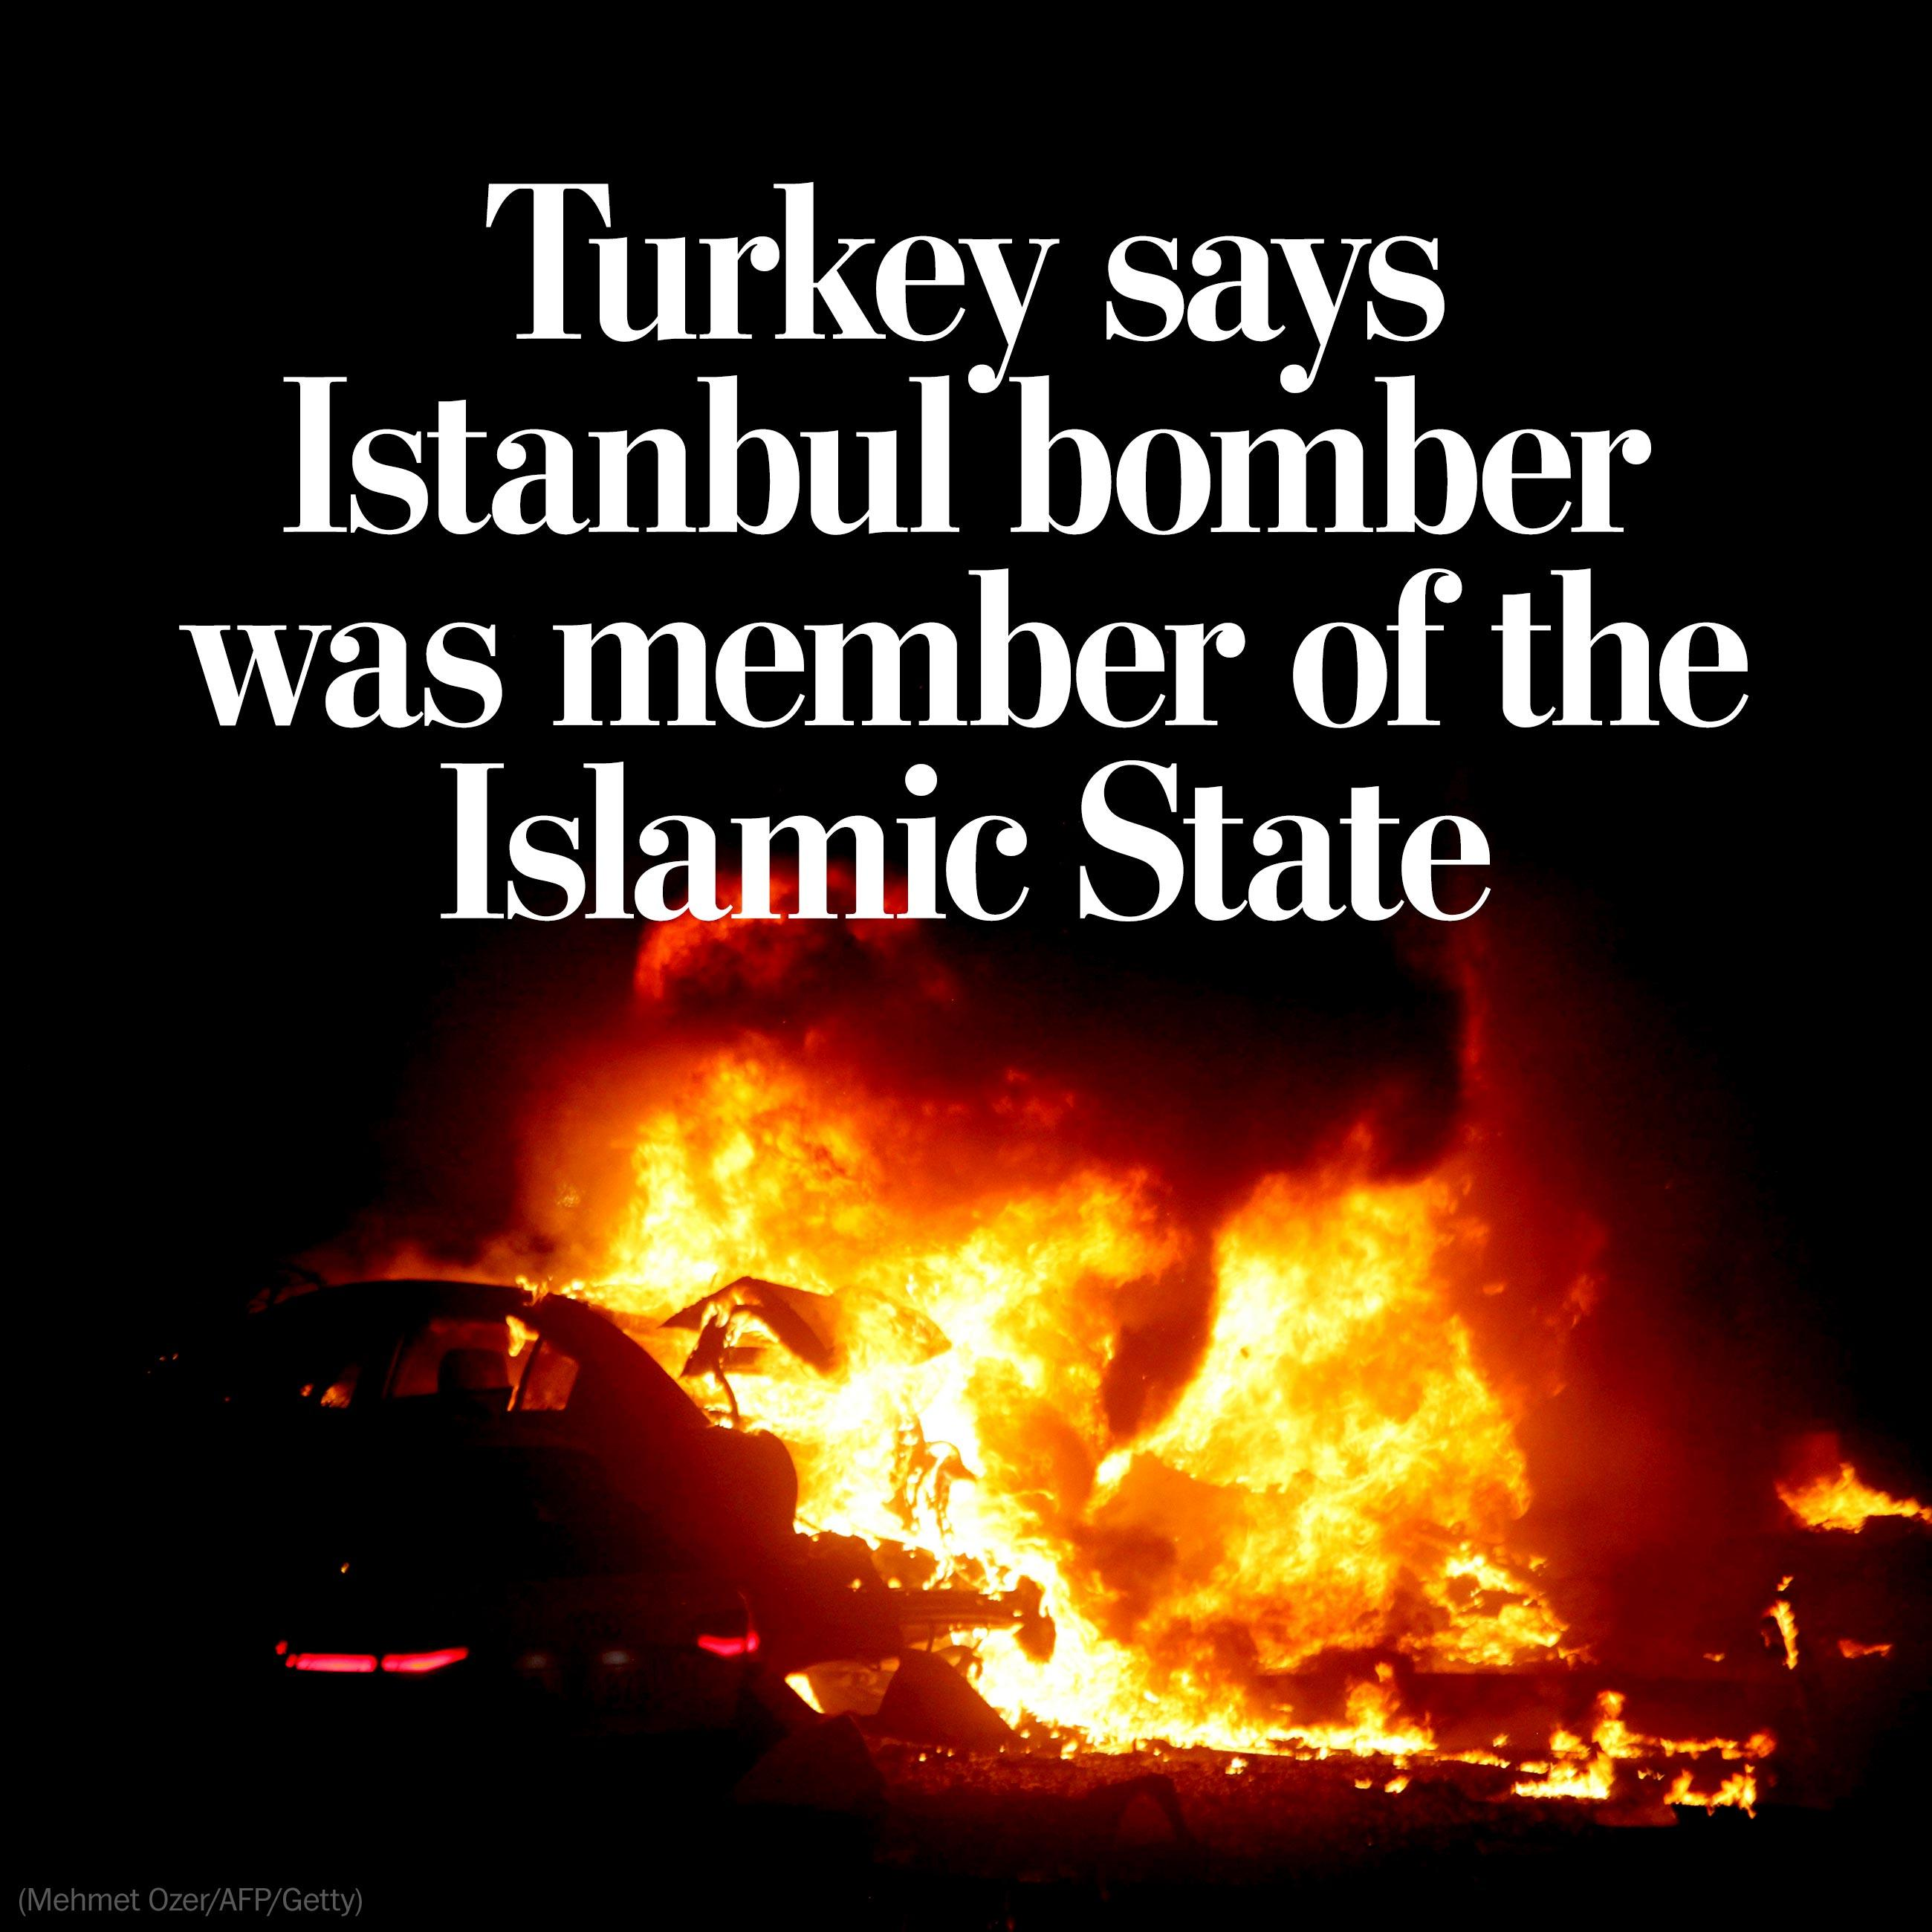 Turkey alleges Istanbul bomber was a member of the Islamic State